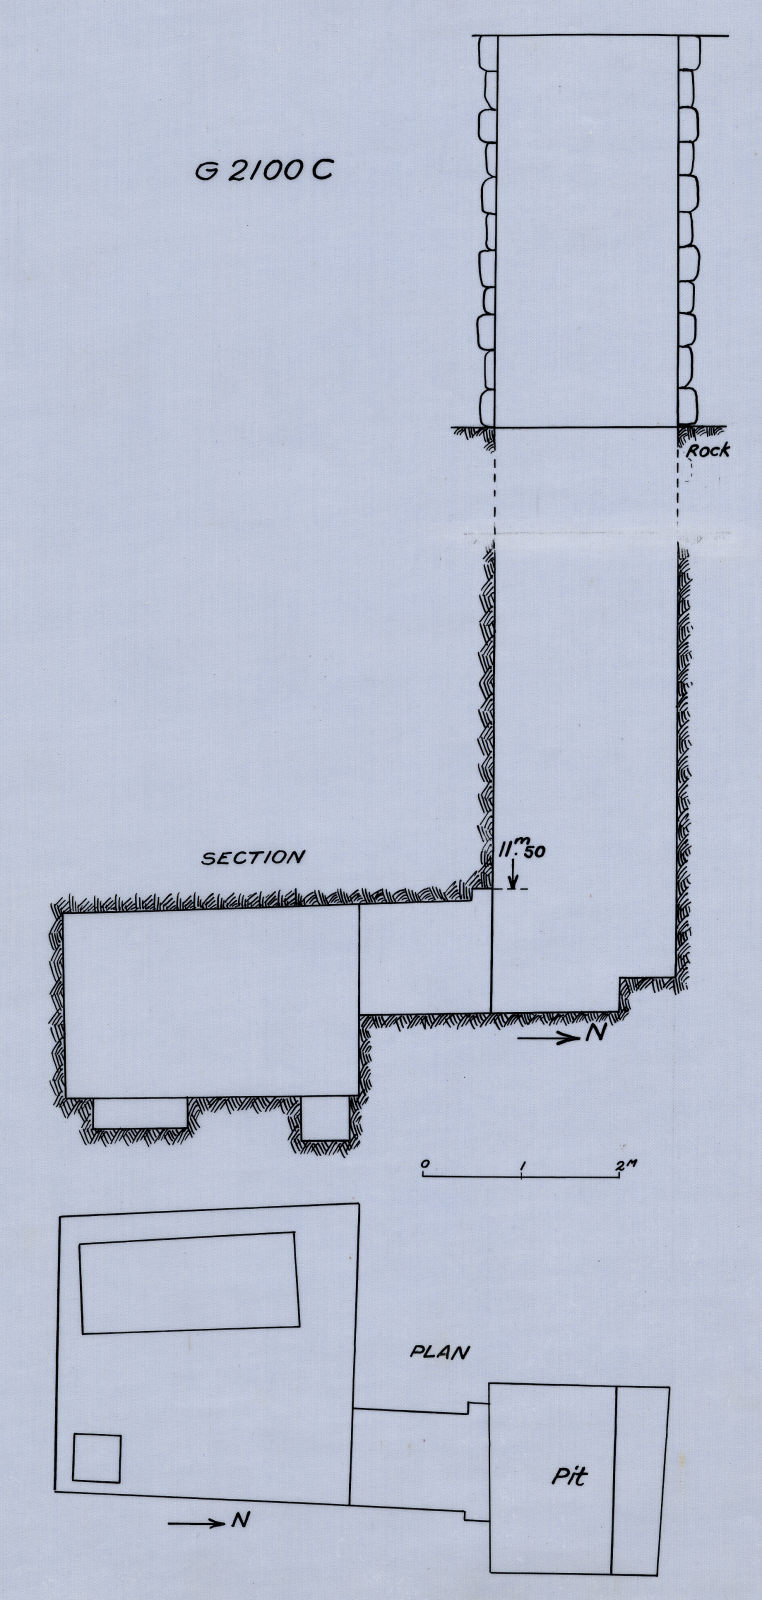 Maps and plans: G 2100-I, Shaft C